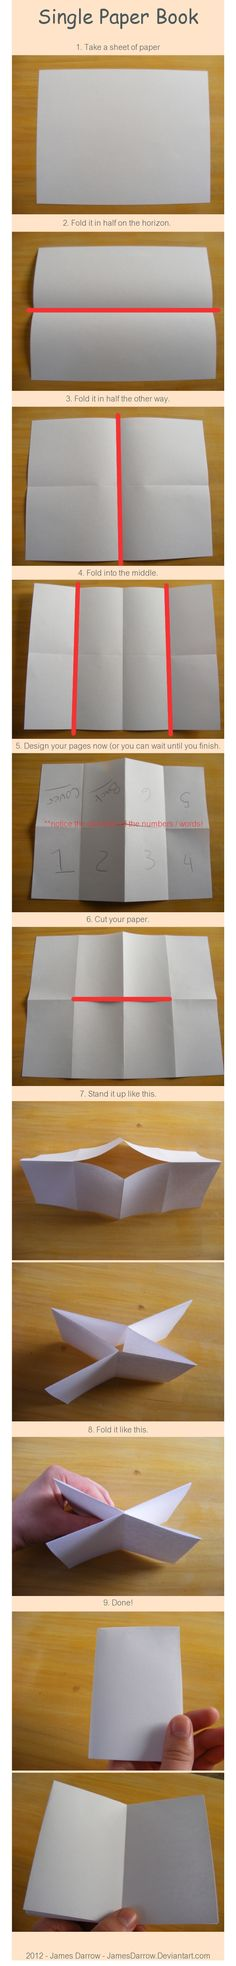 Single sheet of paper = mini book (end result has four flaps including cover and back cover)